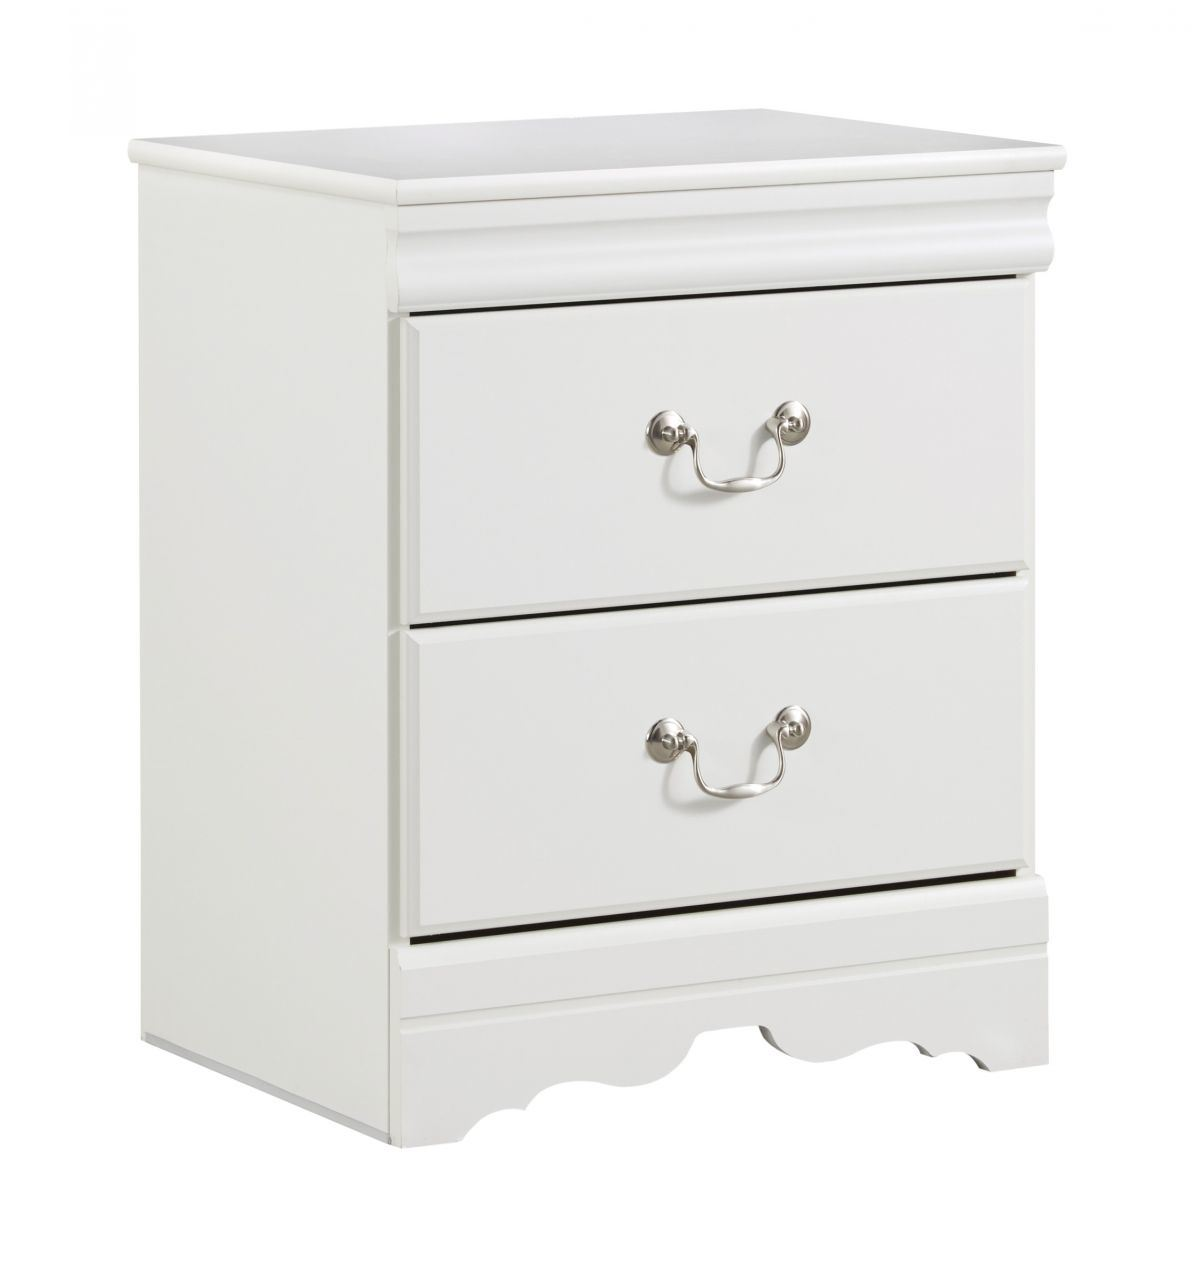 Picture of Anarasia Nightstand